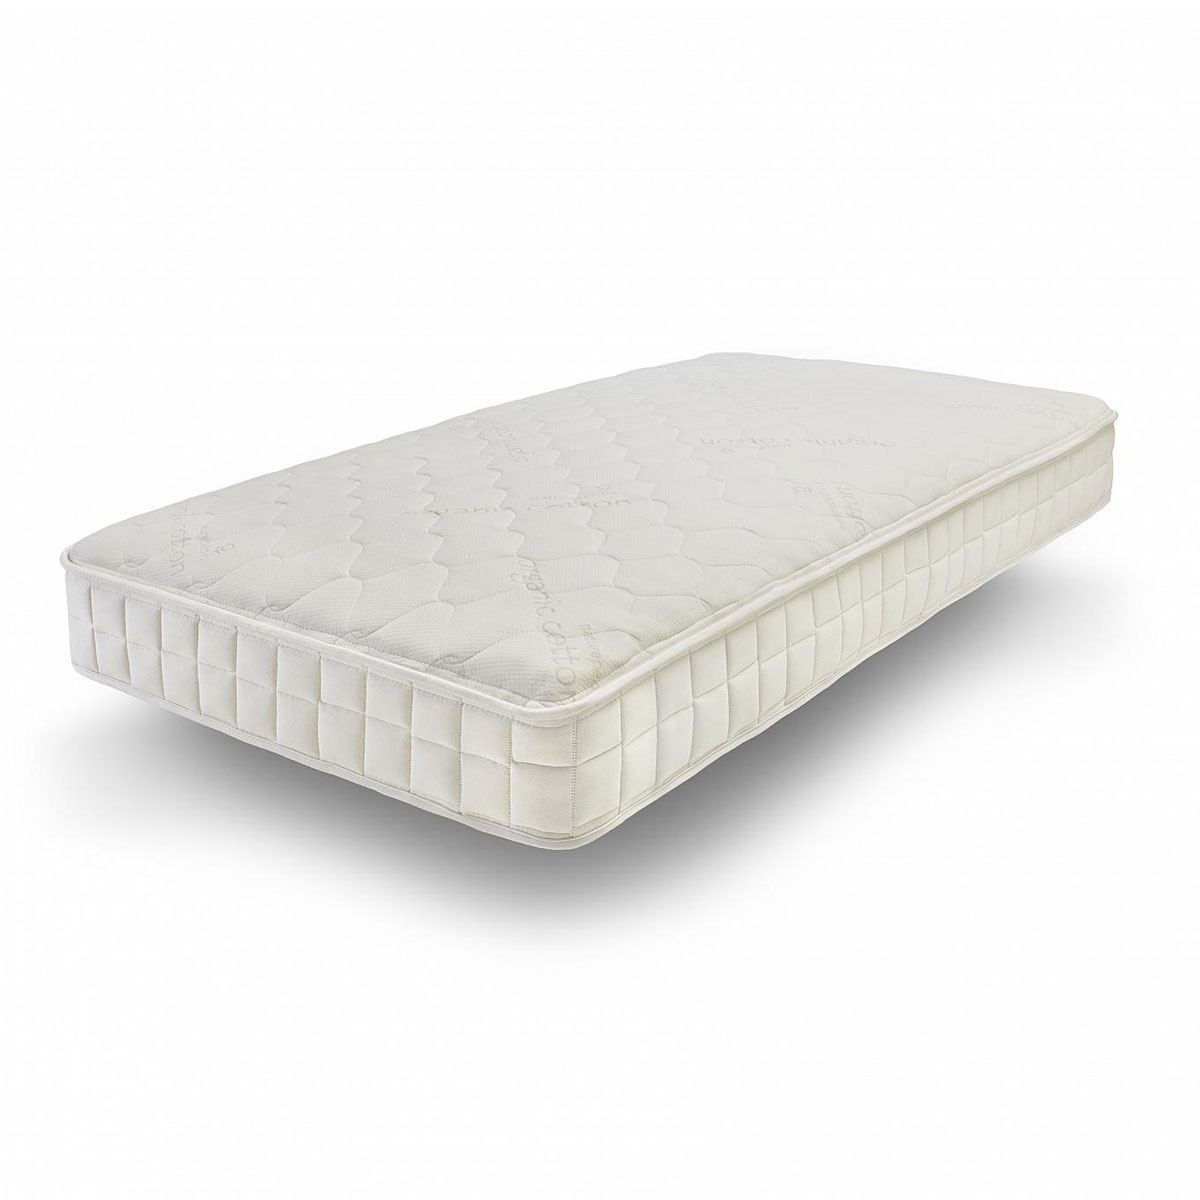 Naturepedic organic twin mattress